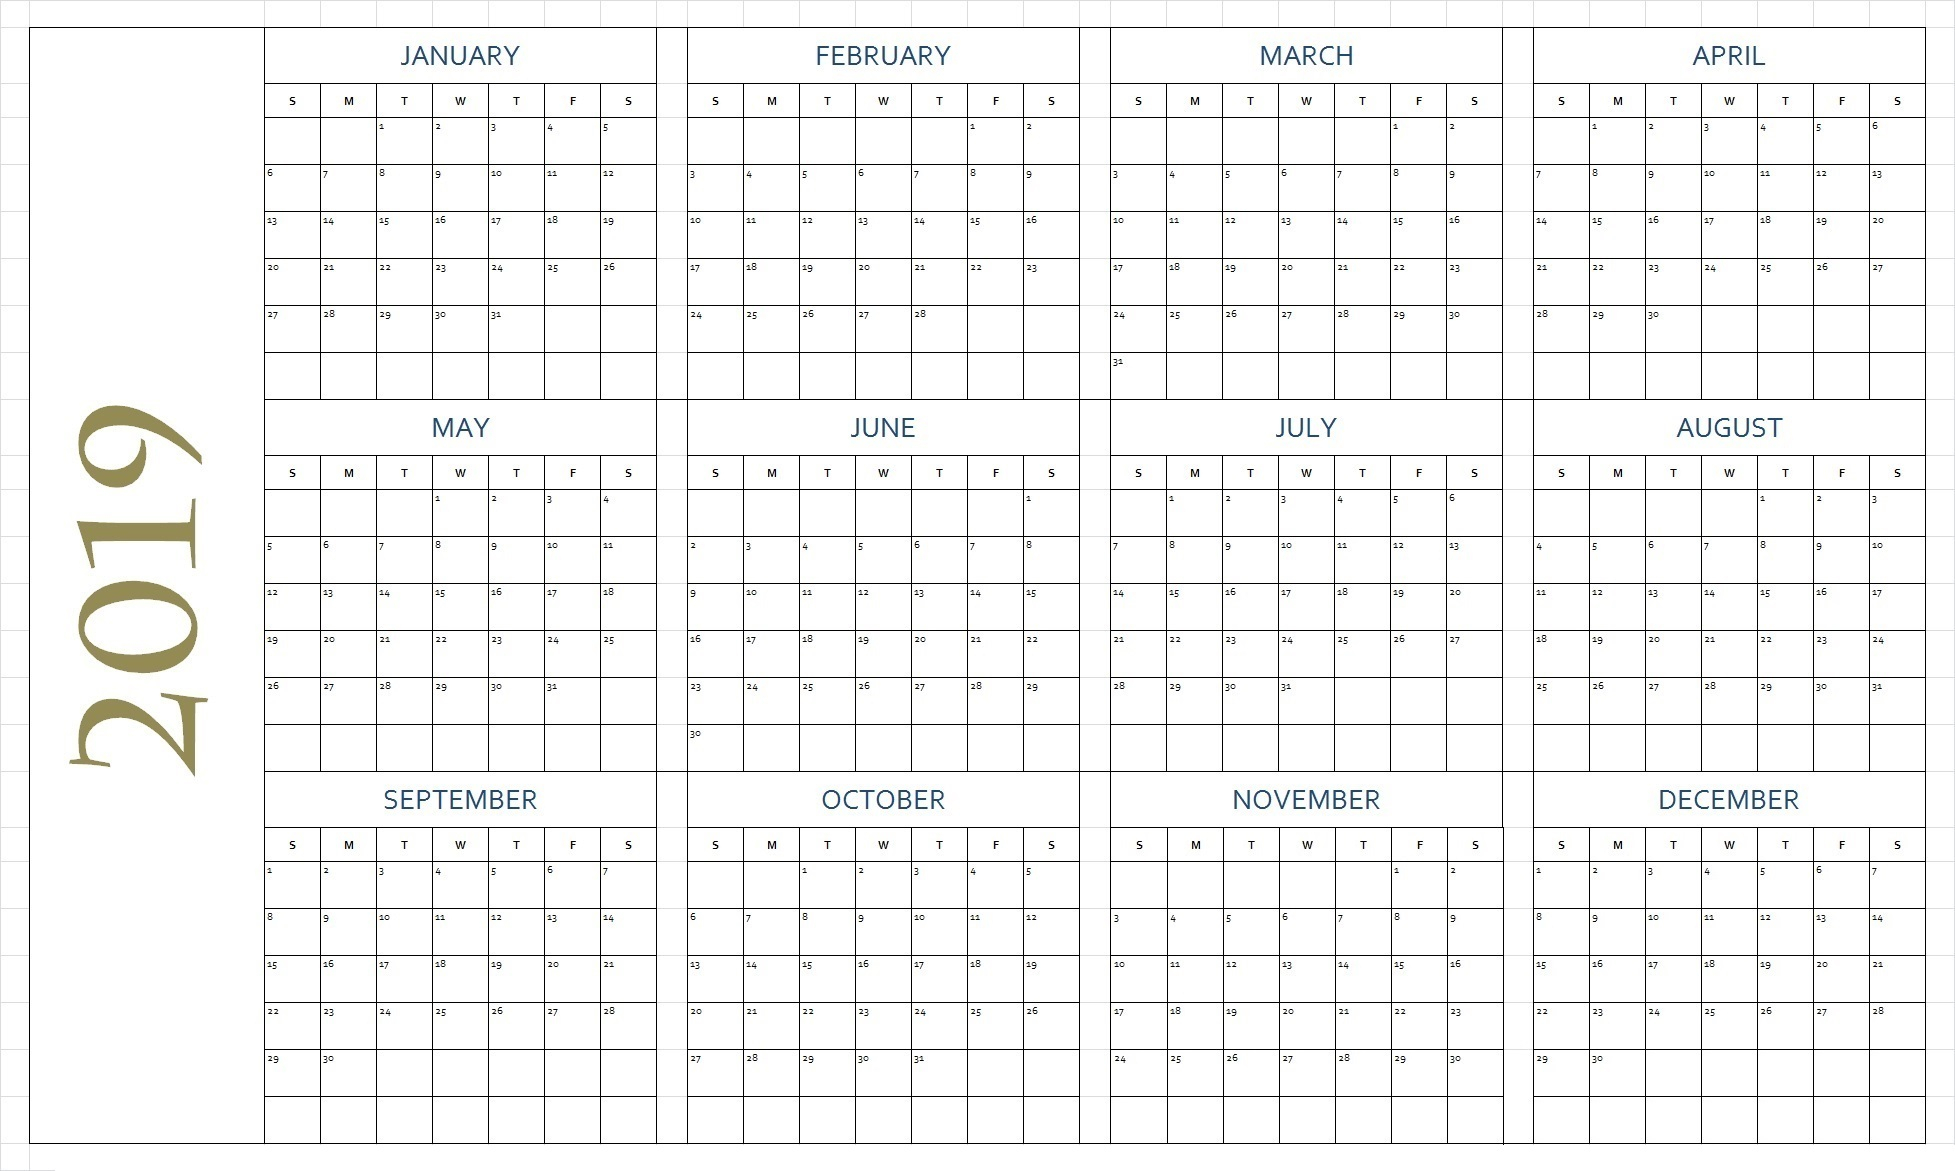 Free Blank Printable Calendar Pages - Free Printable Calendar throughout Blank Printable Calendars Free